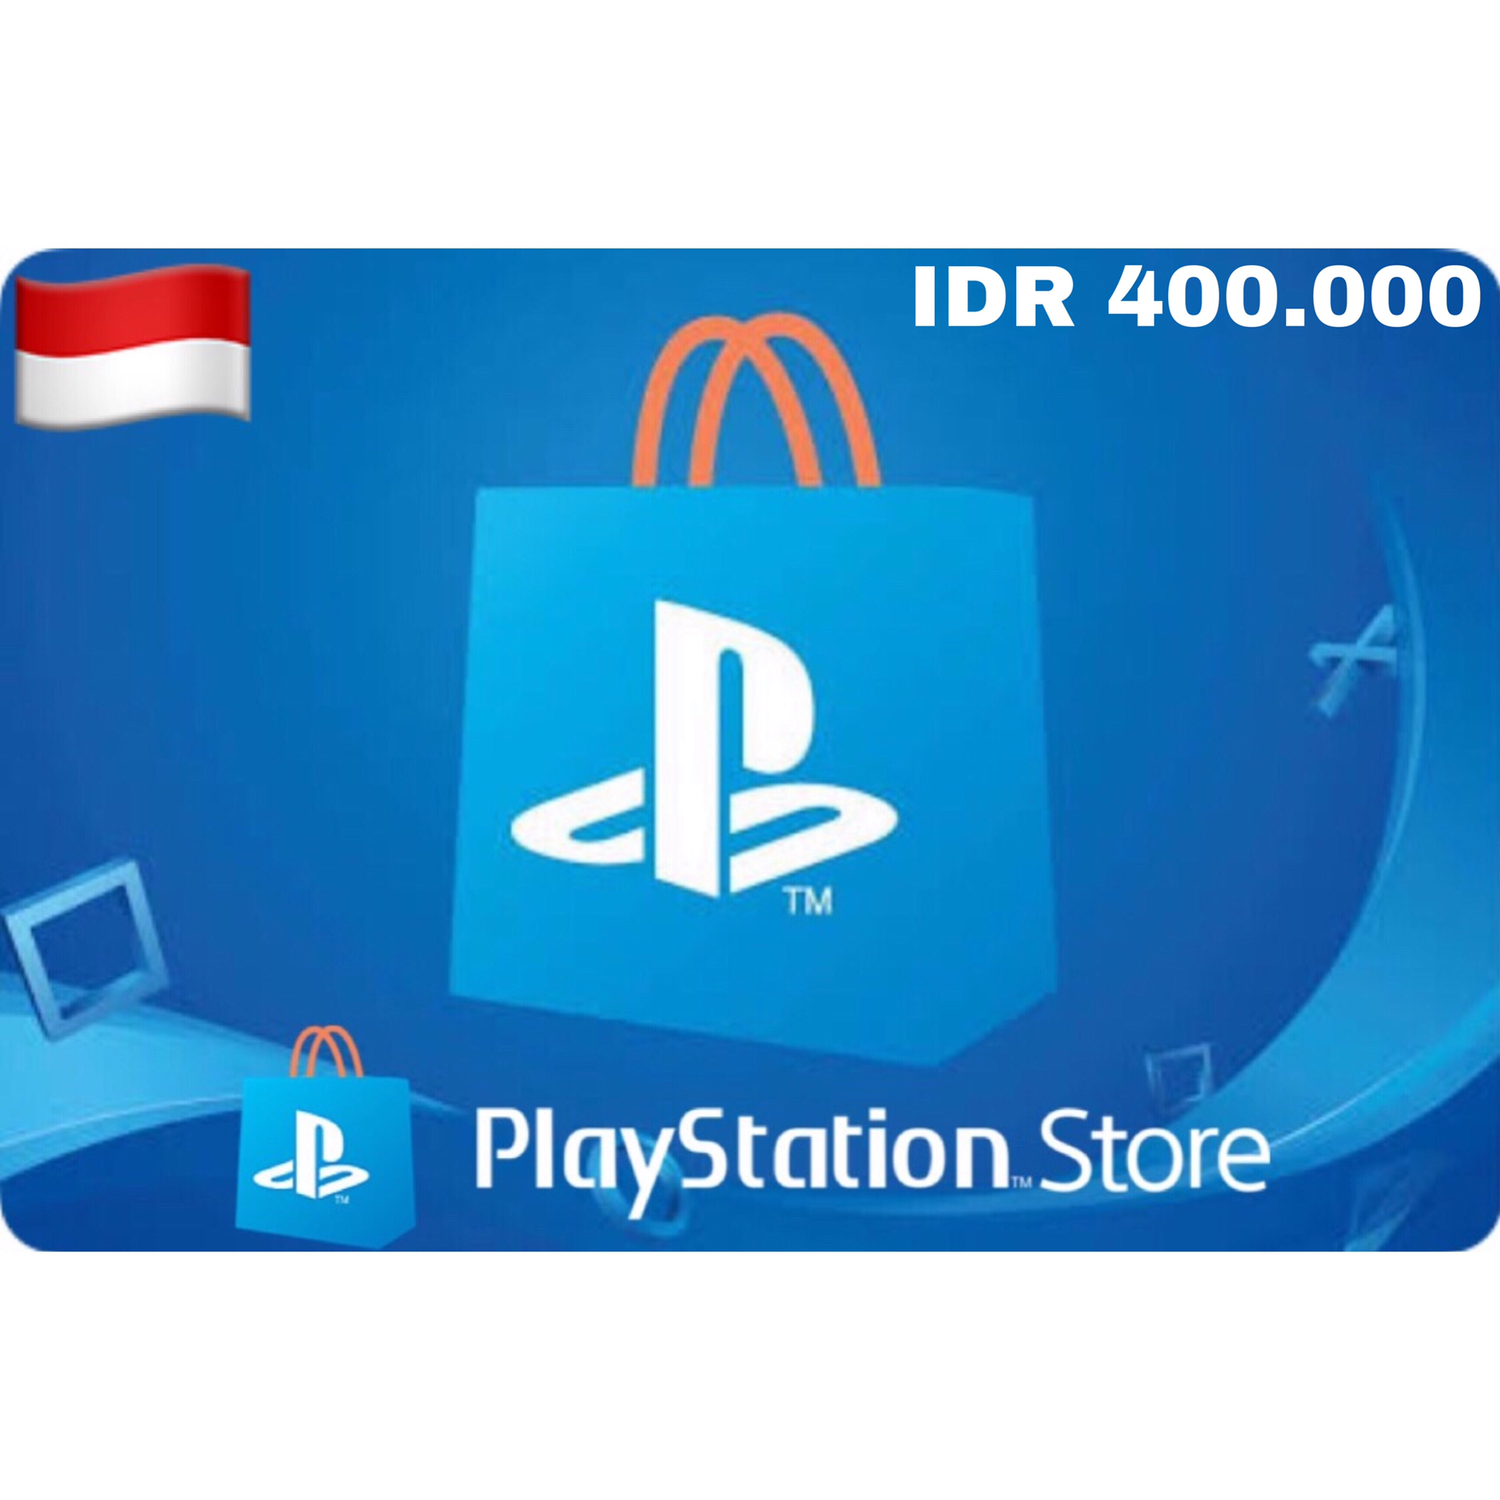 PSN Card - Playstation Network Indonesia IDR 400.000